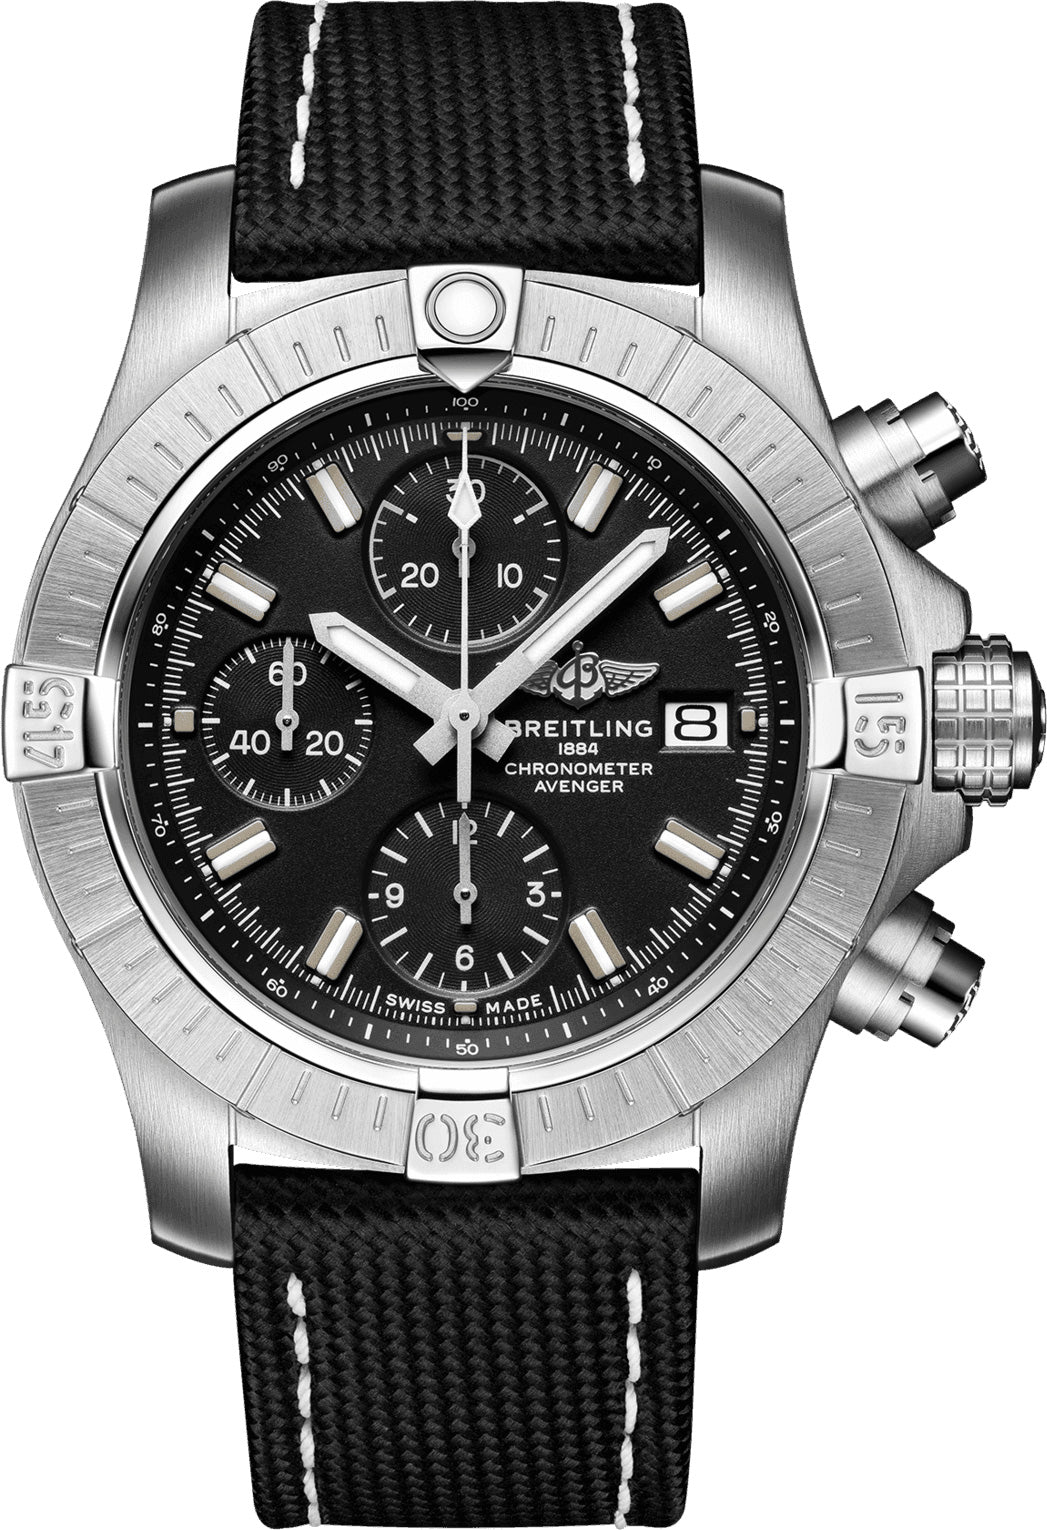 Breitling Watch Avenger Chronograph 43 Folding Clasp